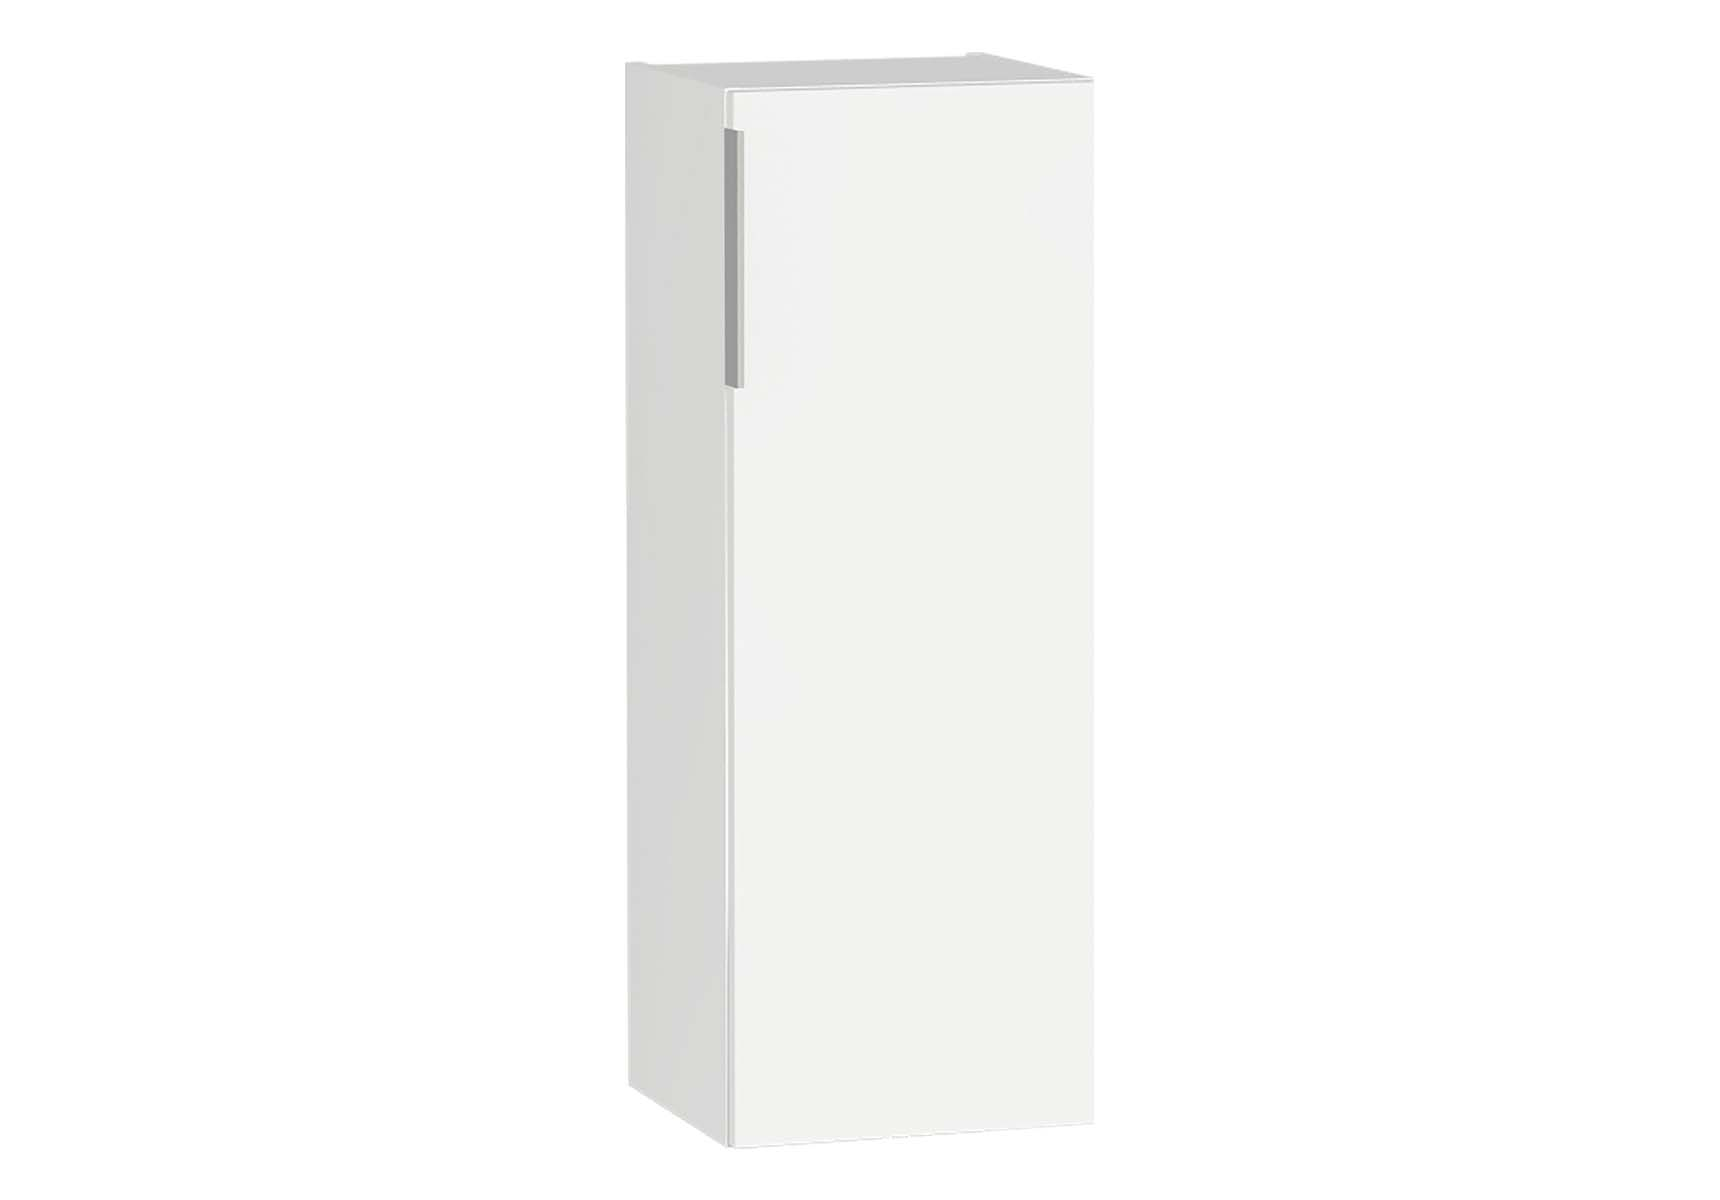 Central Middle Unit, 35 cm, White High Gloss, Right